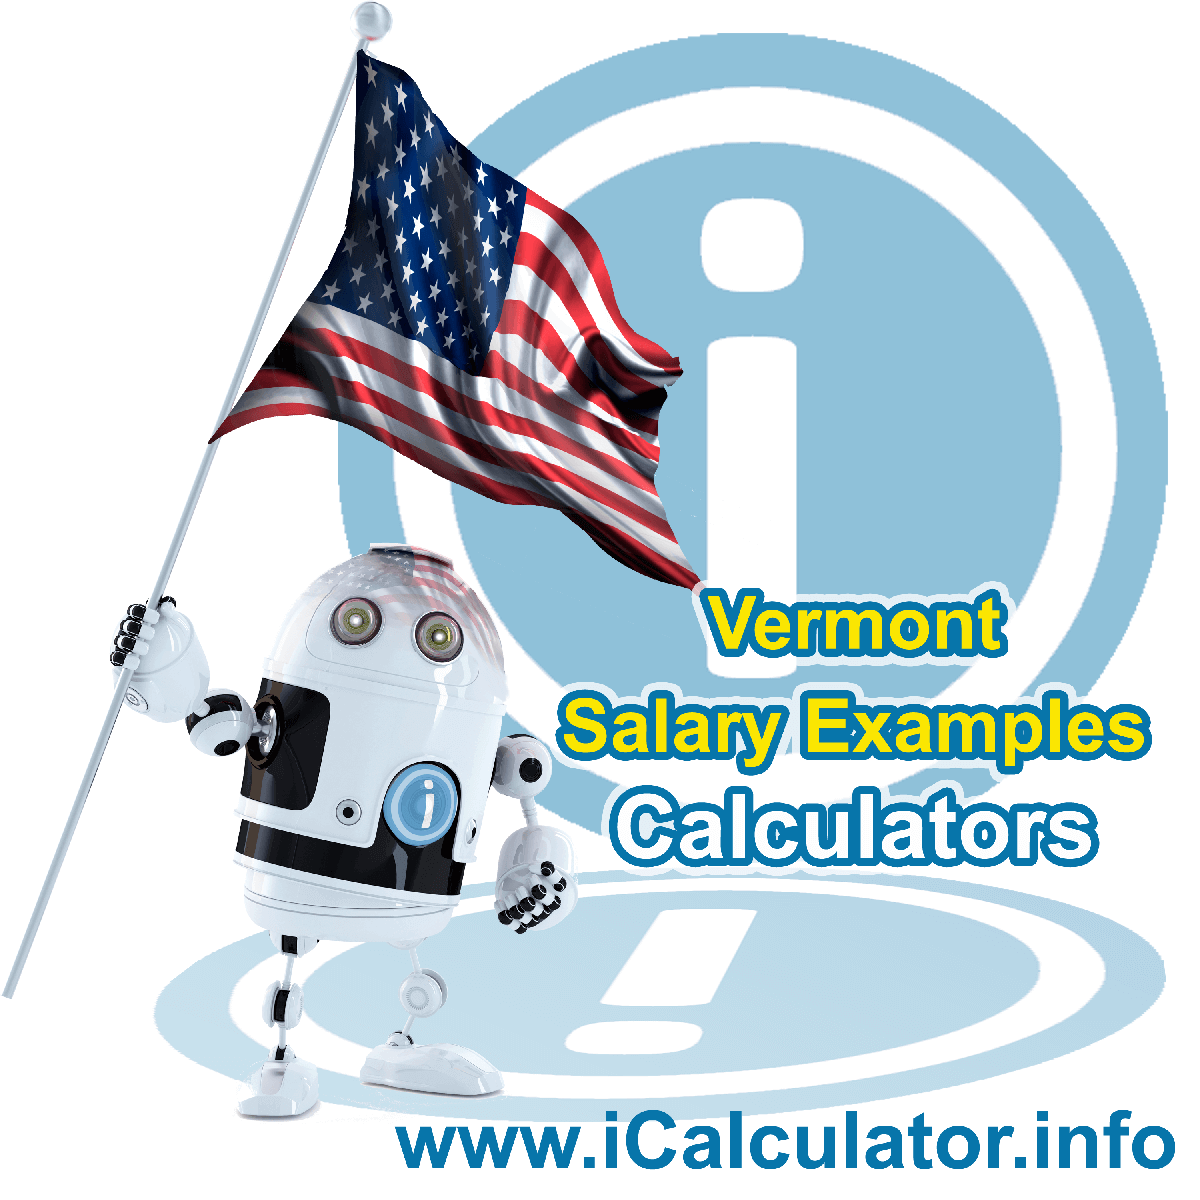 Vermont Salary Example for a $70.00 Annual Salary in 2019 | iCalculator | $70.00 salary example for employee and employer paying Vermont State tincome taxes. Detailed salary after tax calculation including Vermont State Tax, Federal State Tax, Medicare Deductions, Social Security, Capital Gains and other income tax and salary deductions complete with supporting Vermont state tax tables